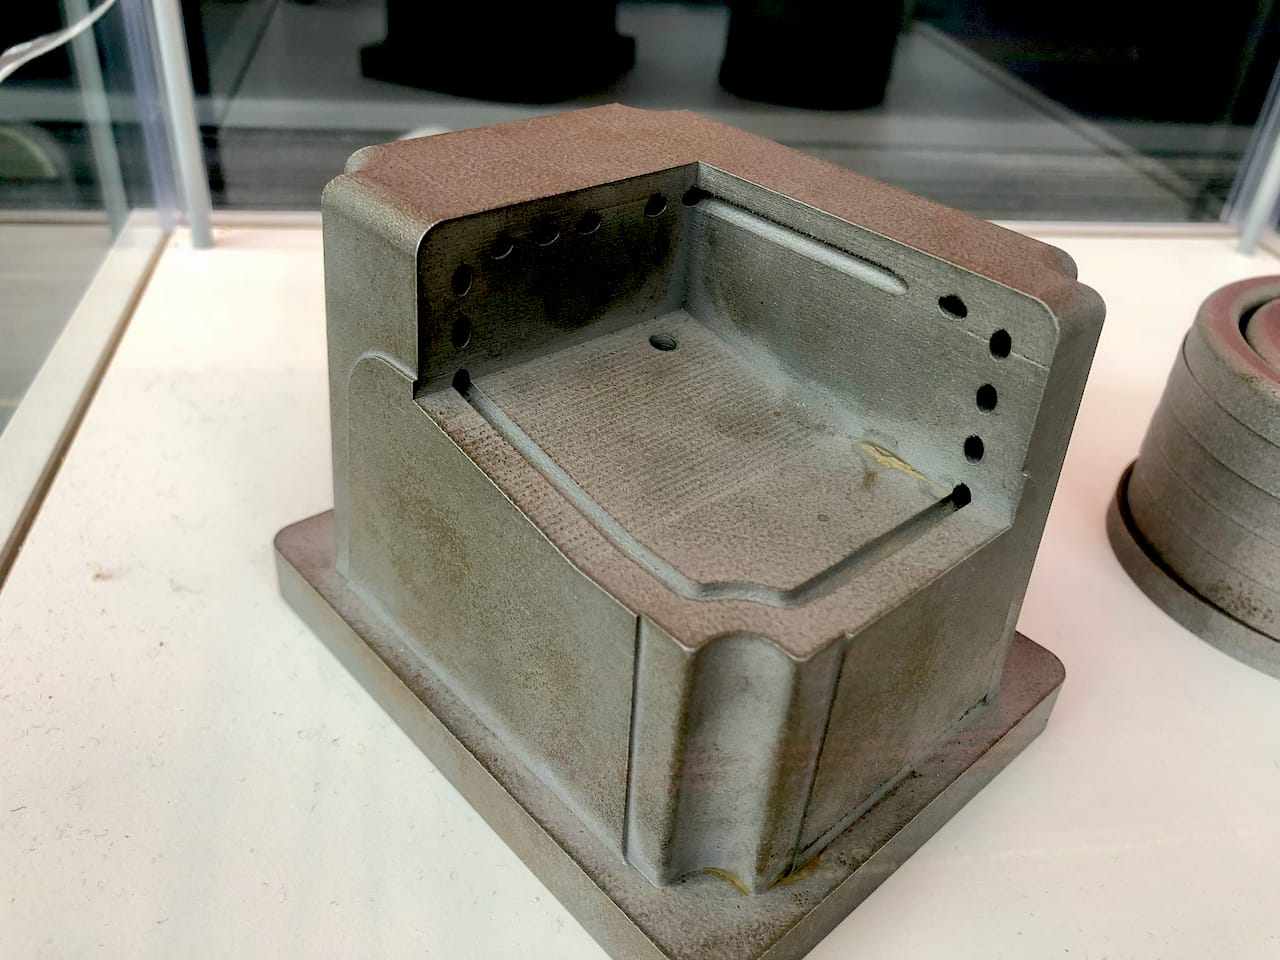 A 3D printed metal production mold showing venting holes [Source: Fabbaloo]